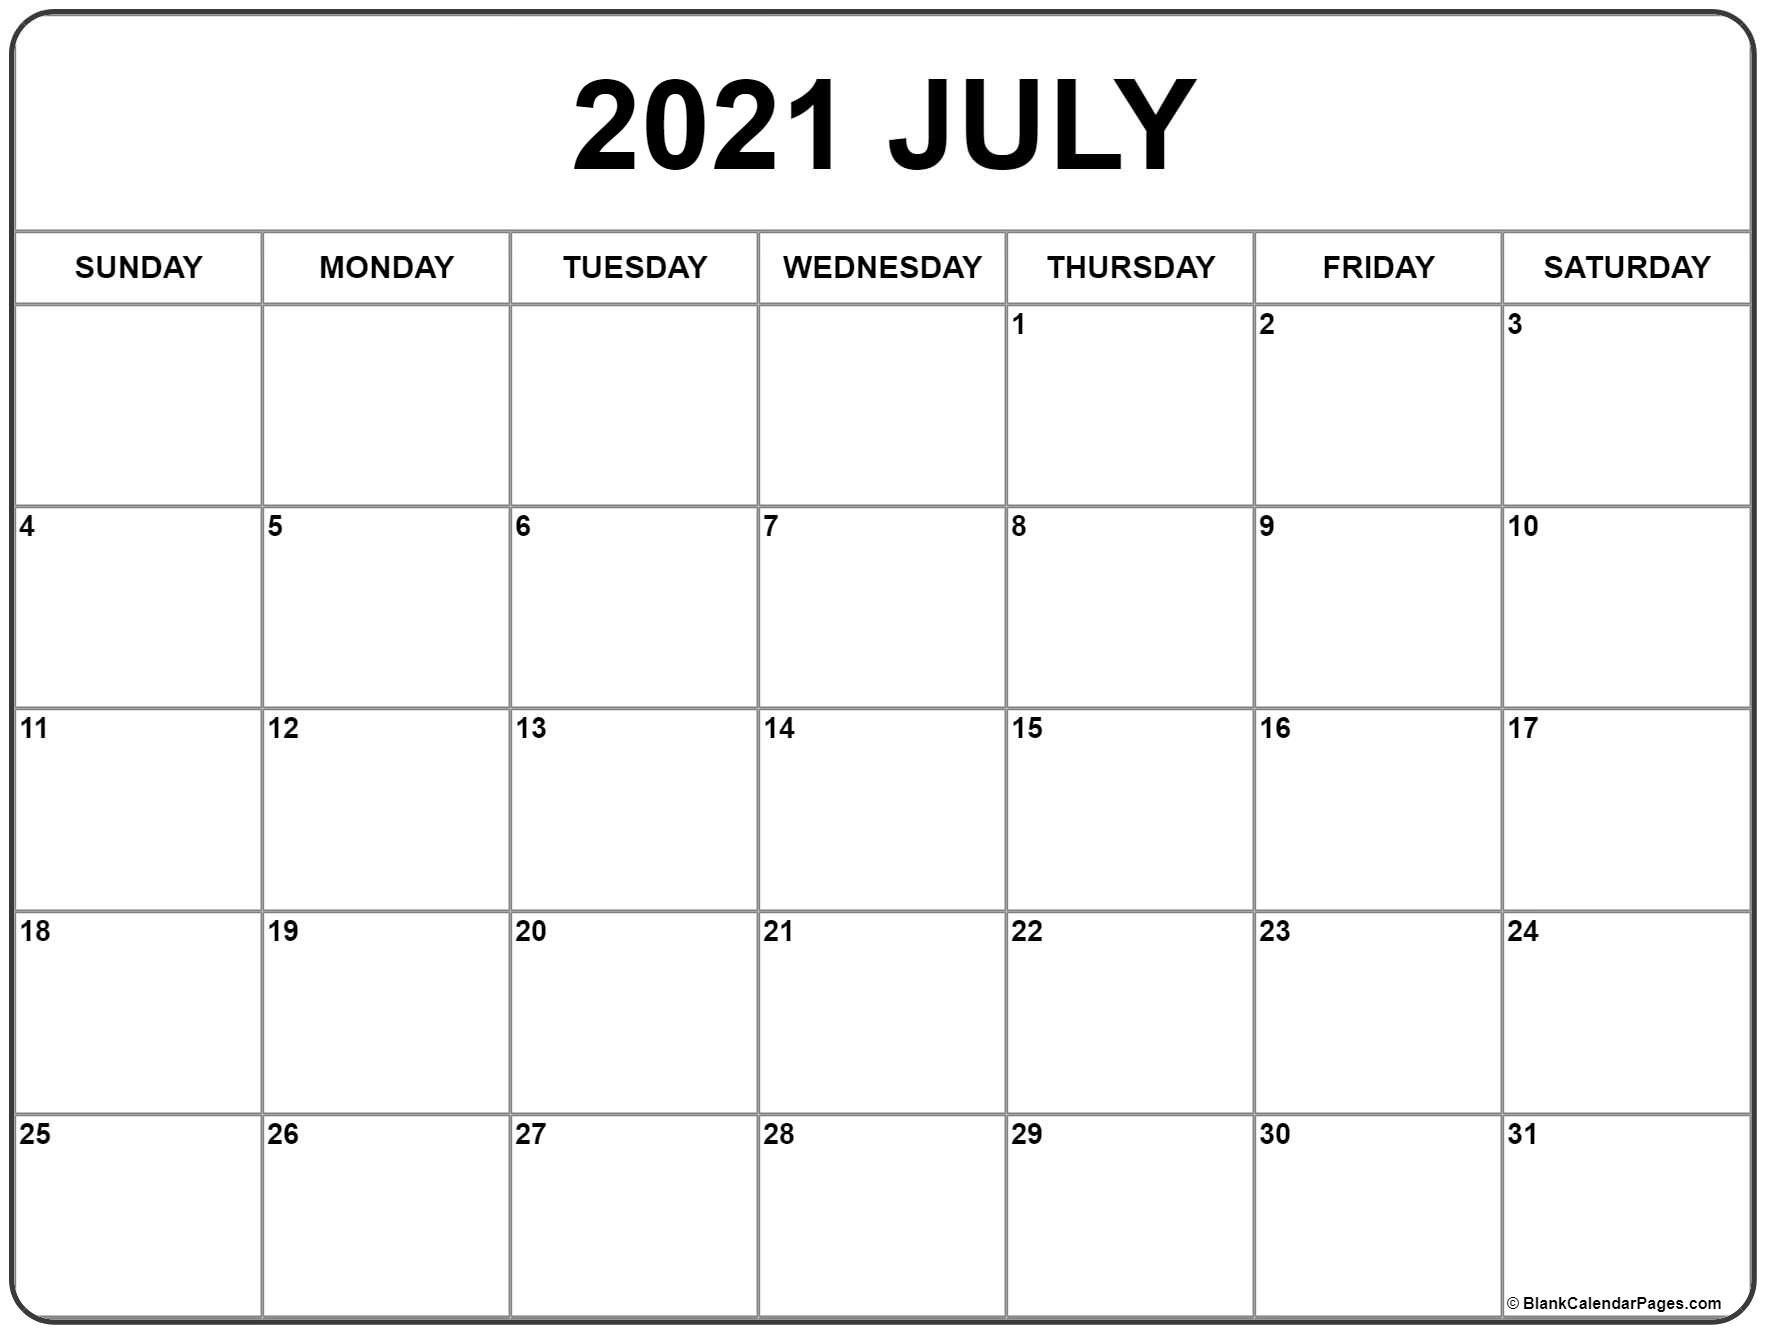 July 2021 Calendar | Free Printable Monthly Calendars throughout Fill In 2021 Calendar Pages Blank